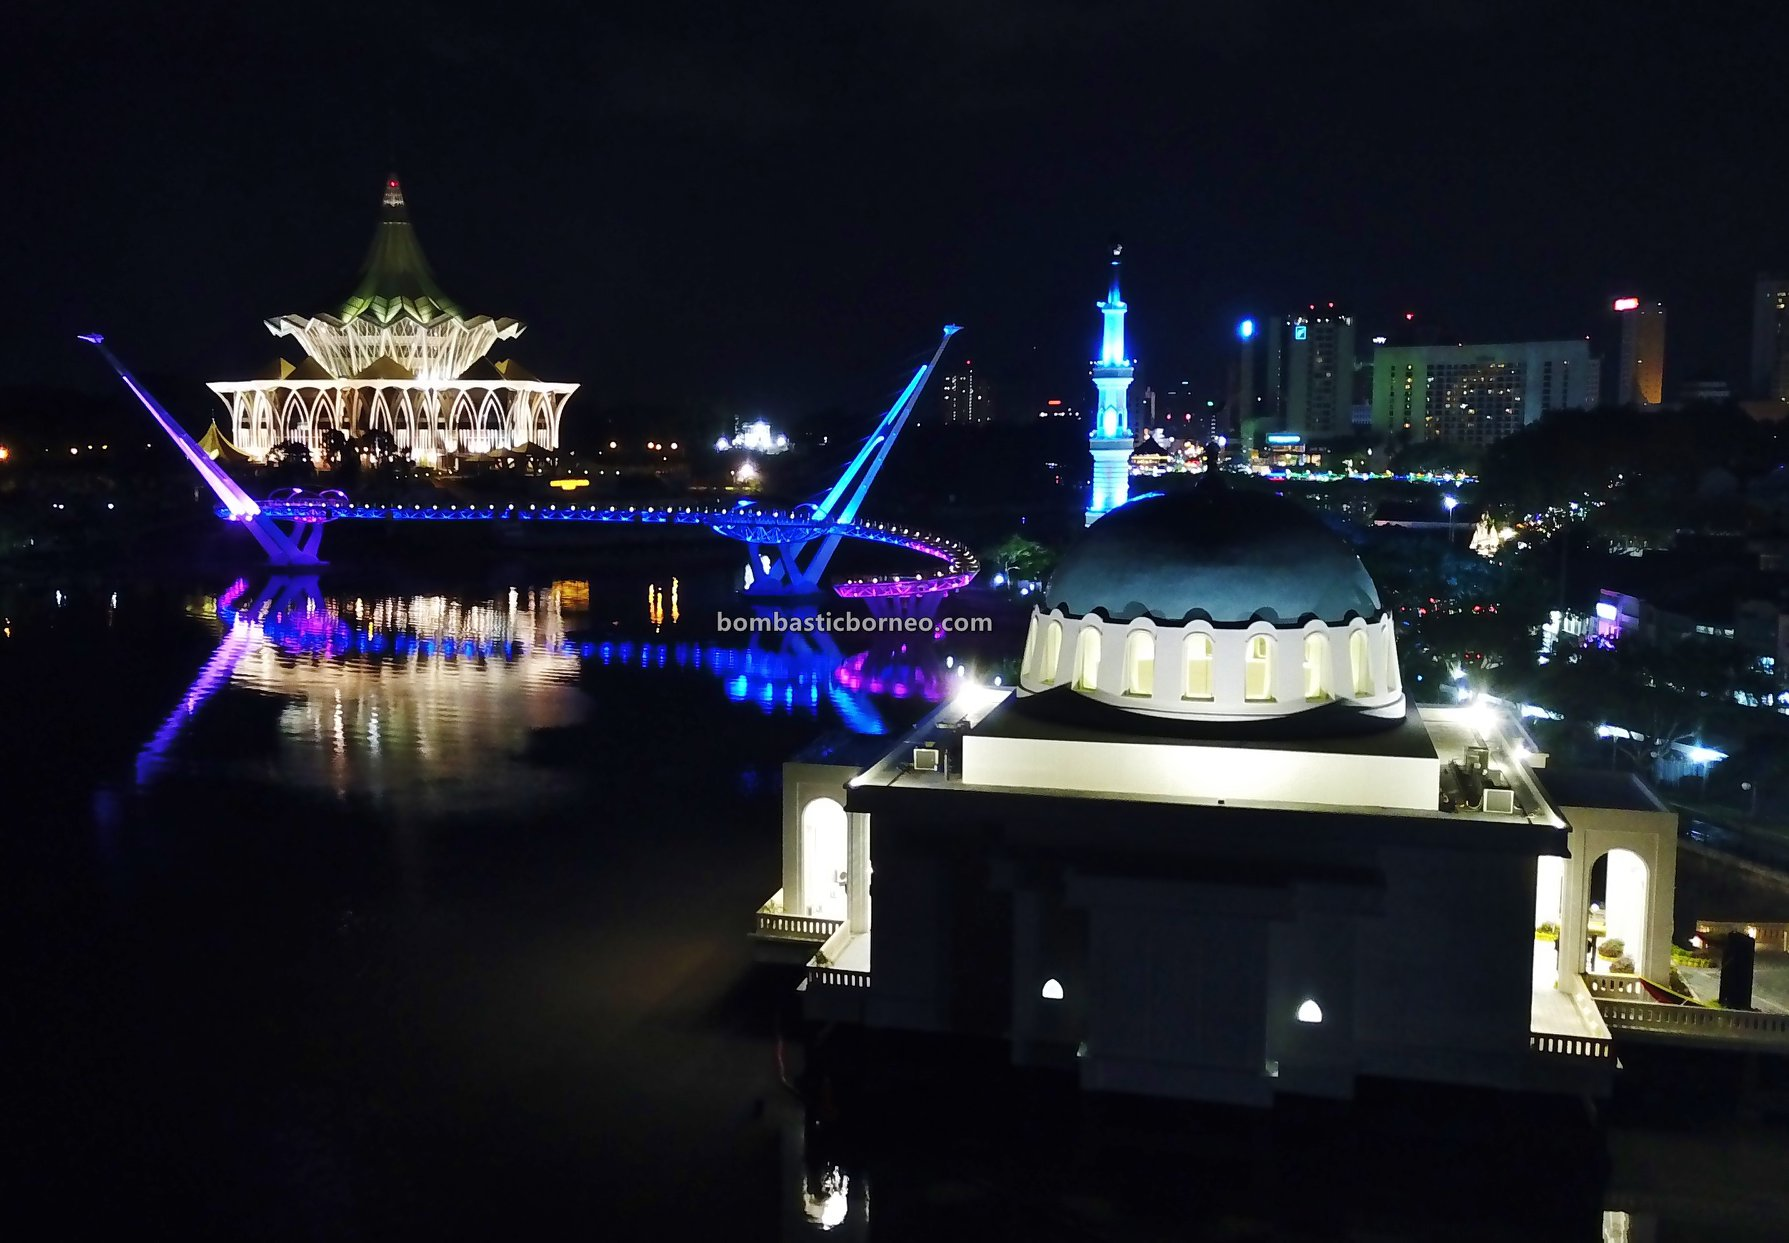 Floating Mosque, Masjid India Bandar Kuching, Masjid Tertua, DUN, destination, Borneo, Malaysia, Darul Hana Bridge, culture, Sarawak river, Tourism, travel guide, Cross Border, 婆罗洲游踪, 古晋河滨公园, 砂拉越旅游景点